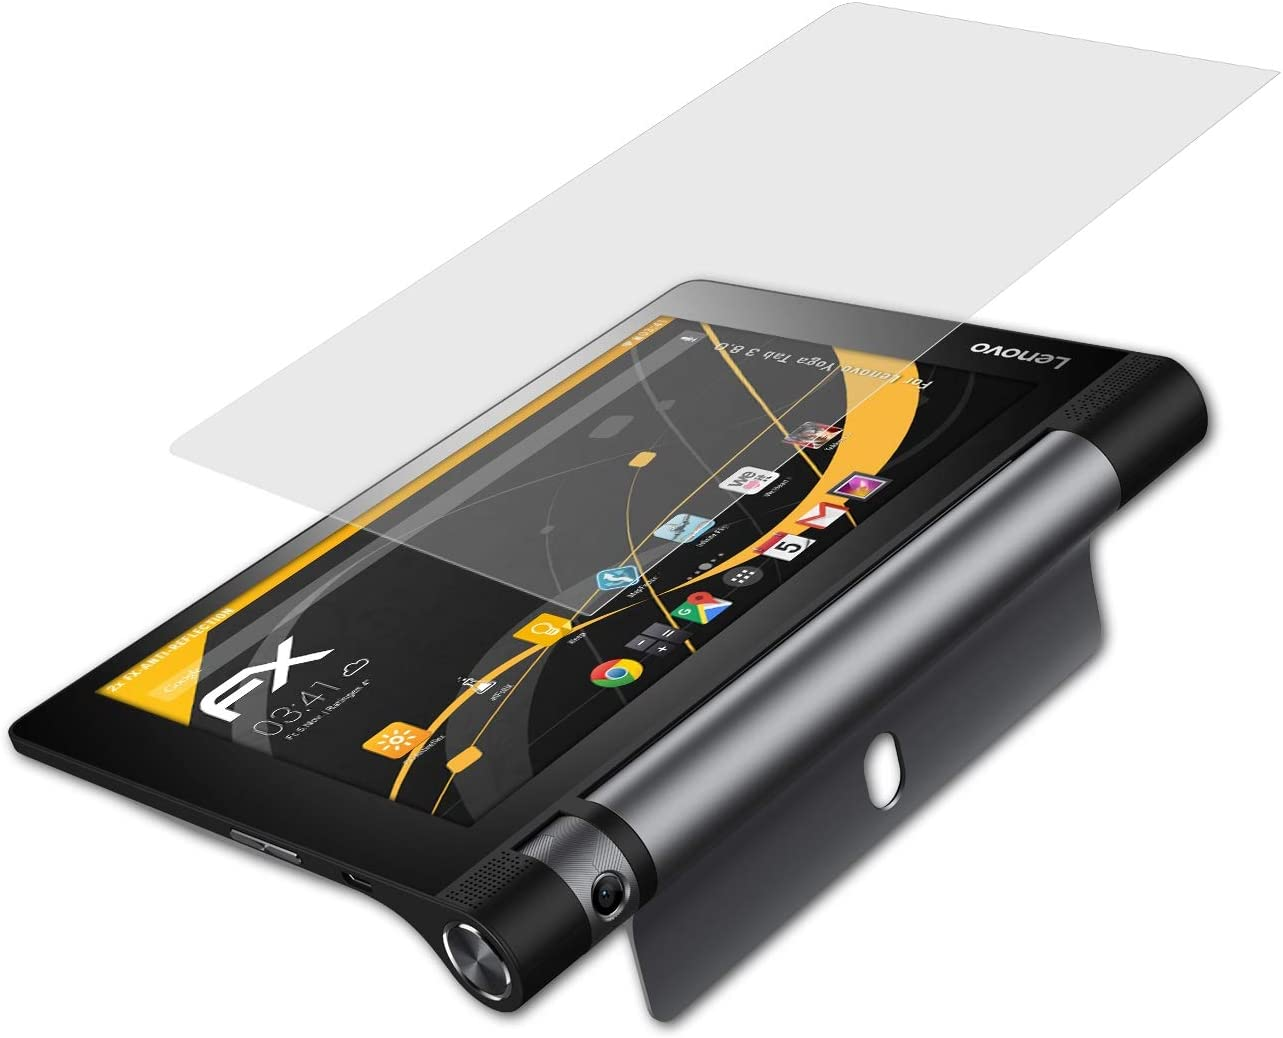 atFoliX Screen Protector Compatible with Lenovo Yoga Tab 3 8.0 Screen Protection Film, Anti-Reflective and Shock-Absorbing FX Protector Film (2X)